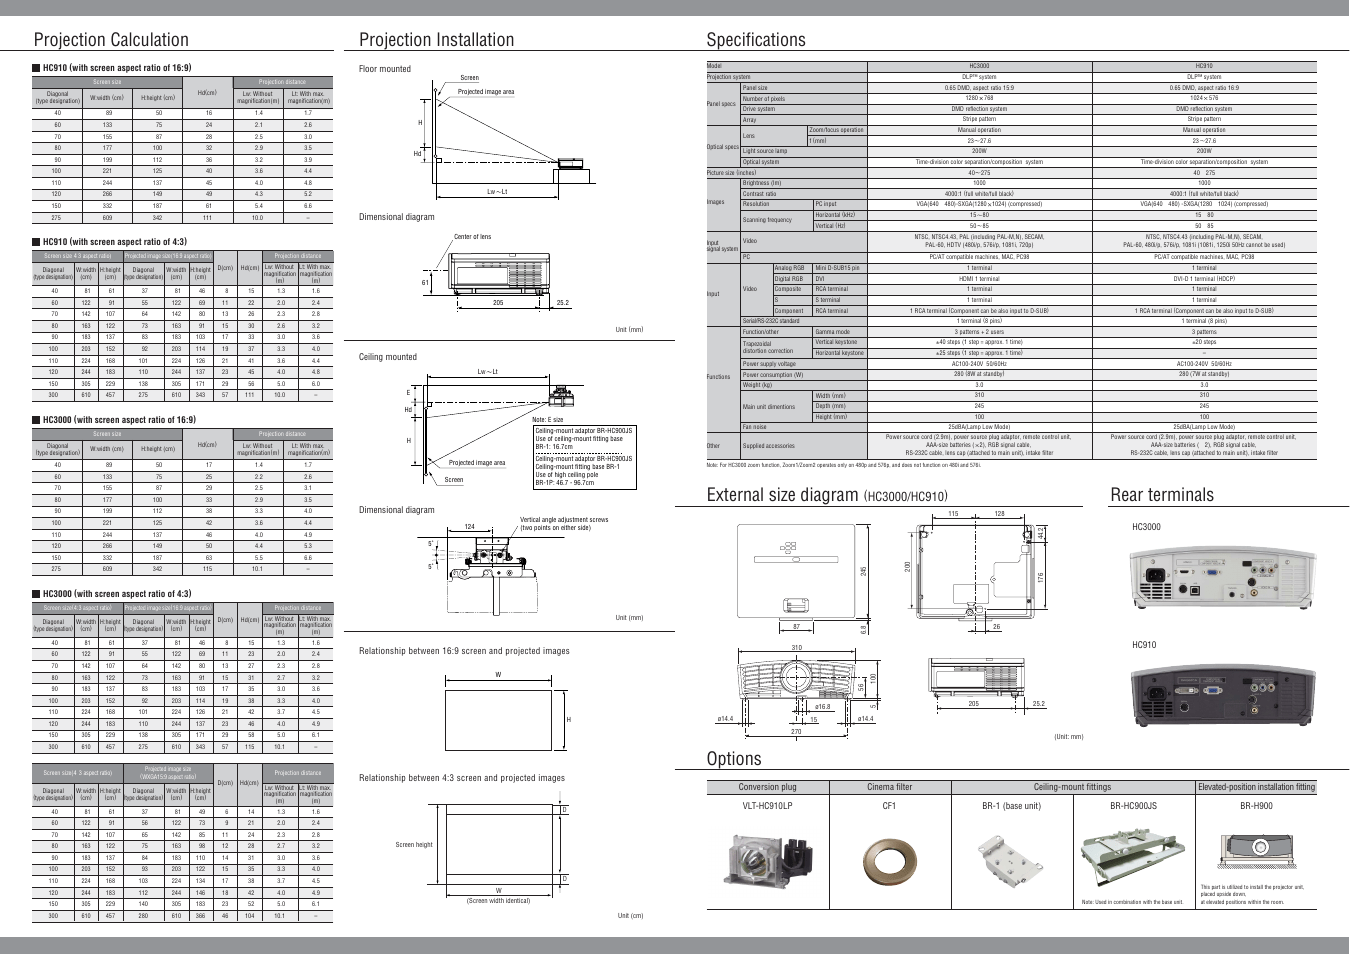 hight resolution of specifications options rear terminals mitsubishi electric hc3000 hc910 user manual page